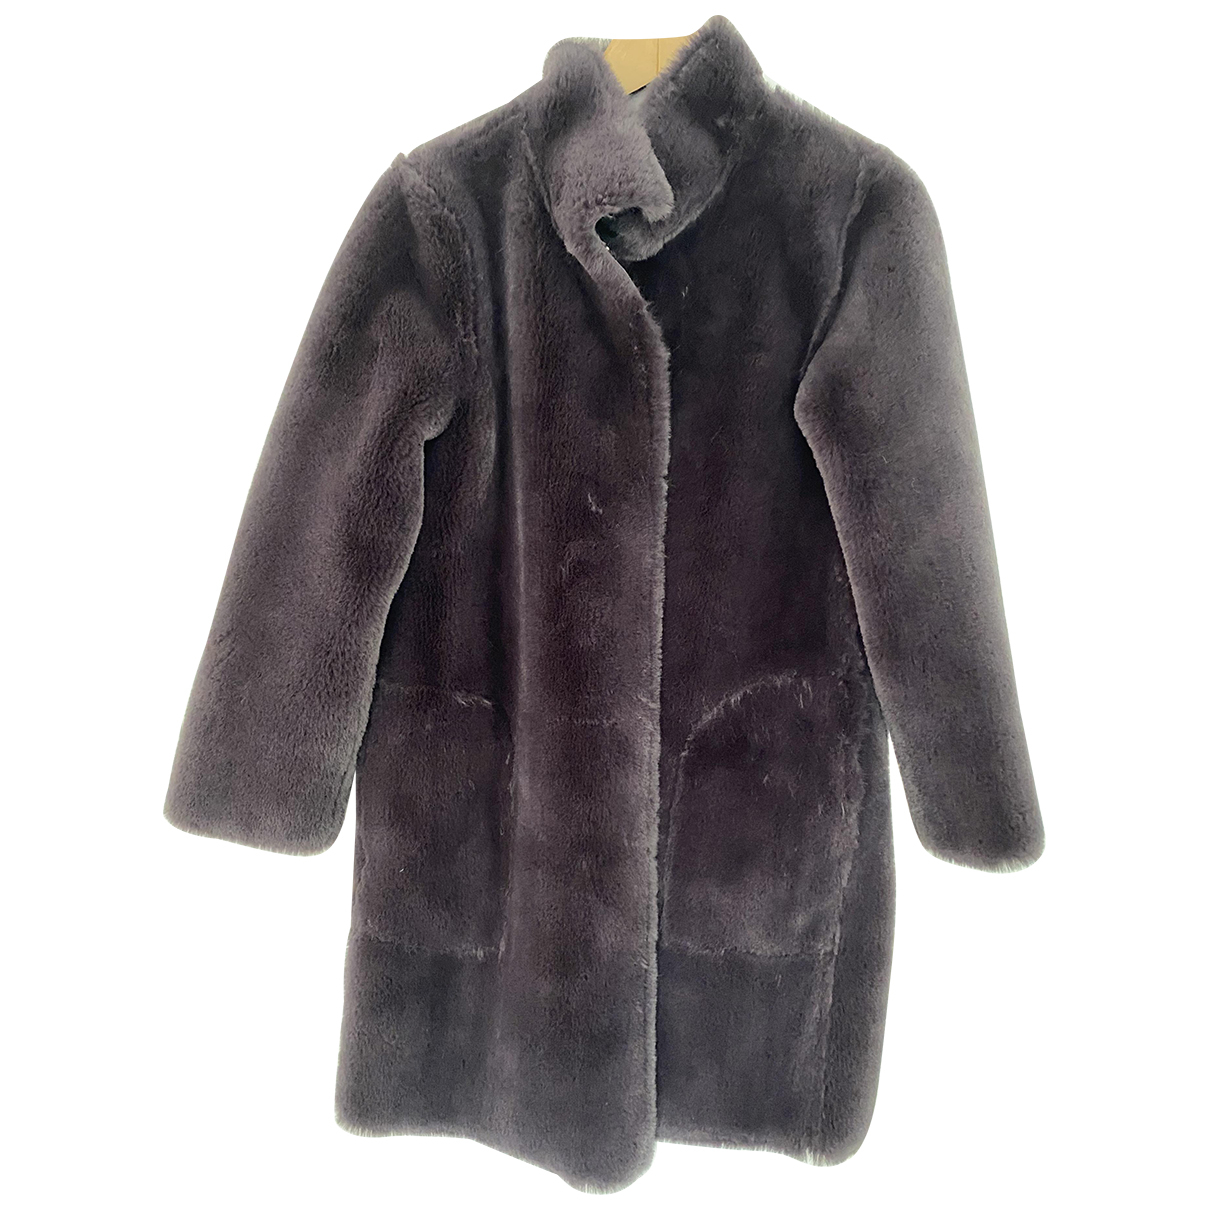 Velvet N Anthracite Faux fur coat for Women 8 UK